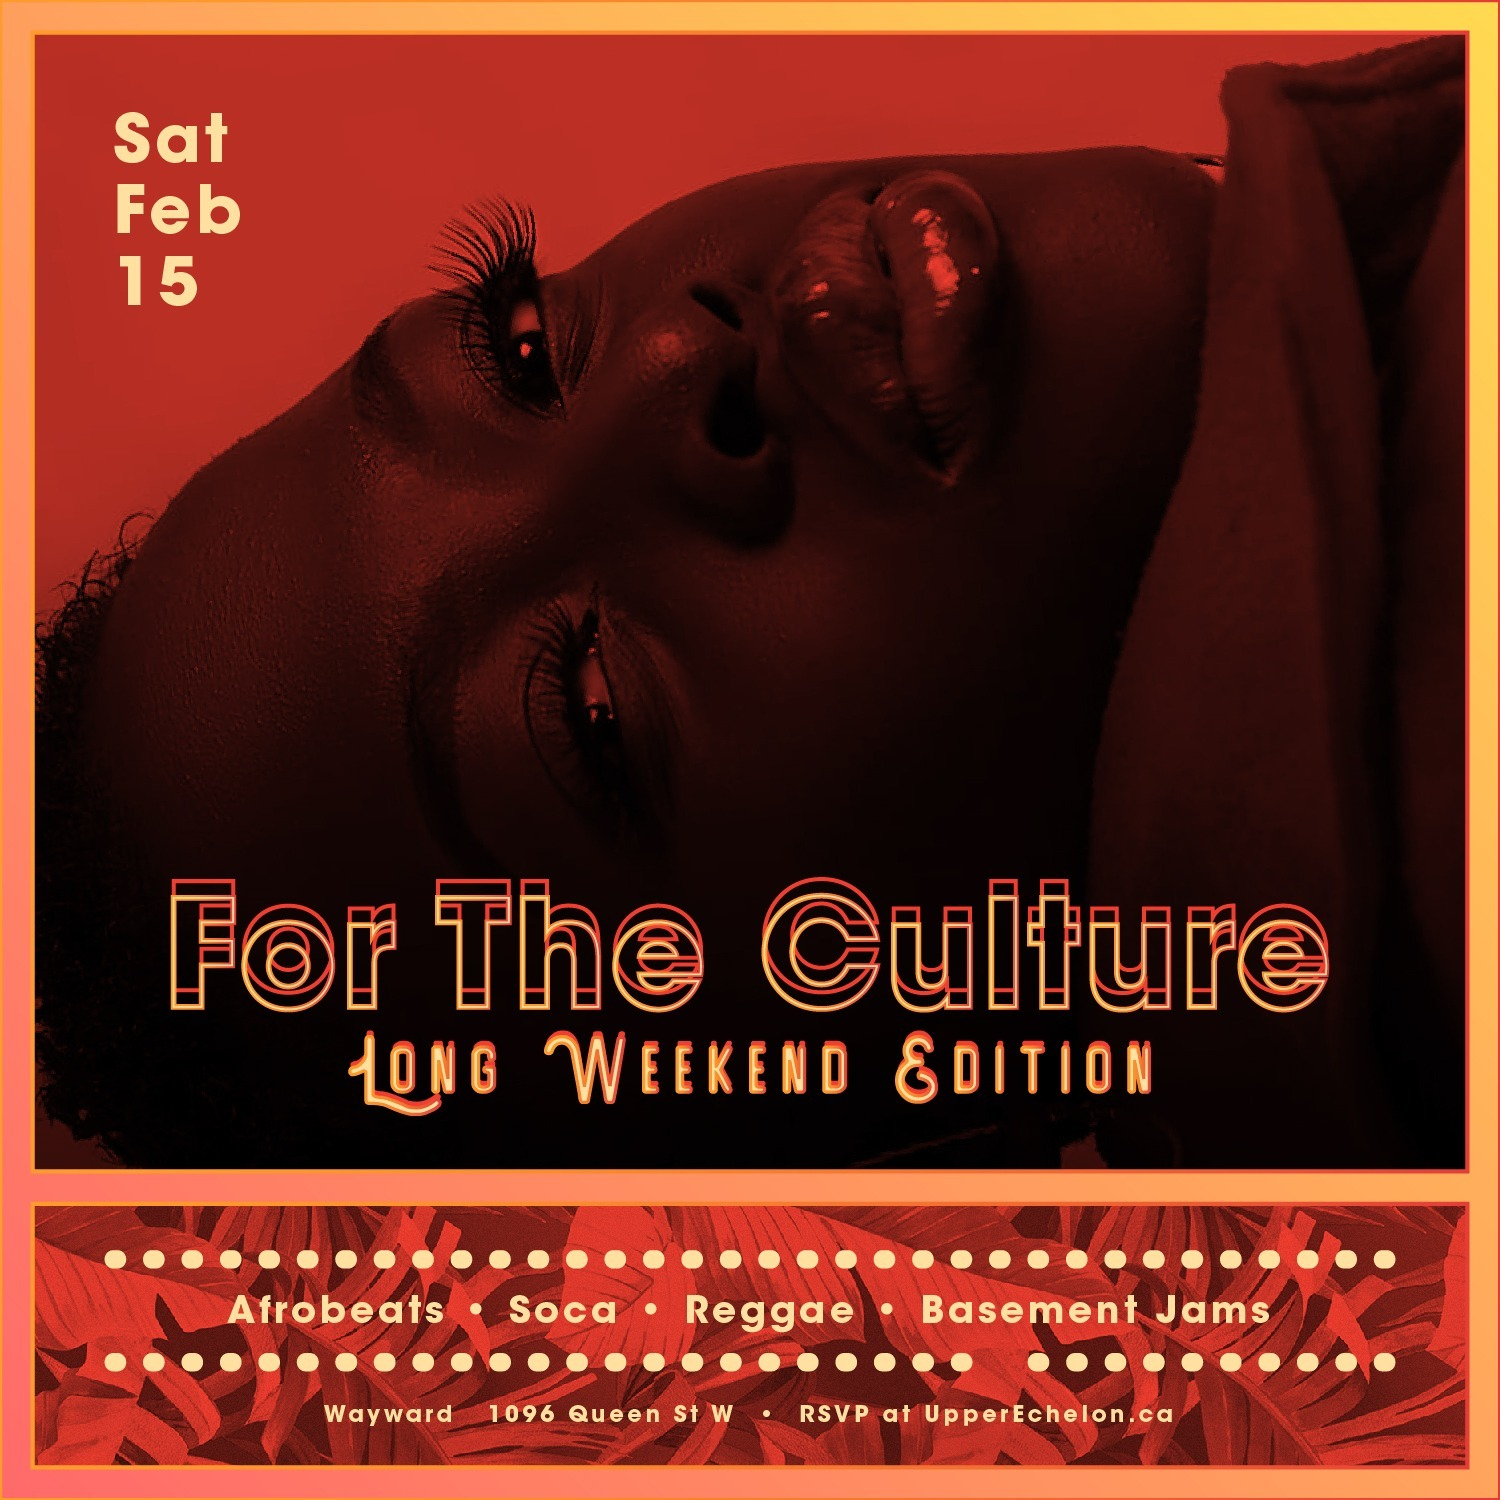 FOR THE CULTURE | Long Weekend Saturday